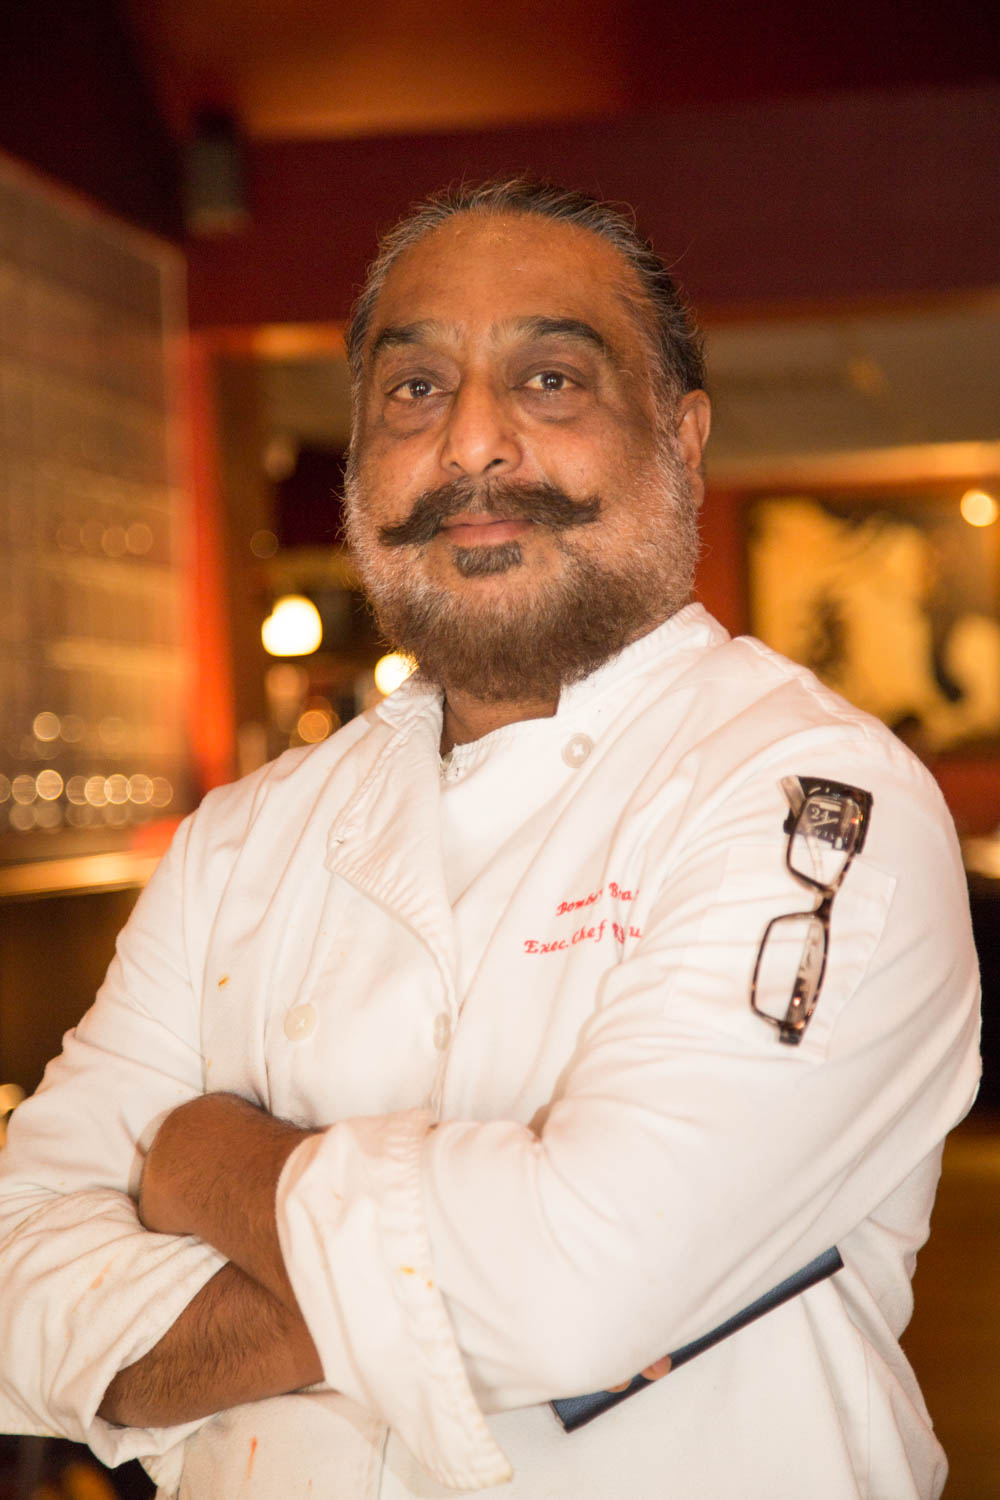 Rip Sidhu, Chef / Image: Catherine Viox / Published: 11.4.16